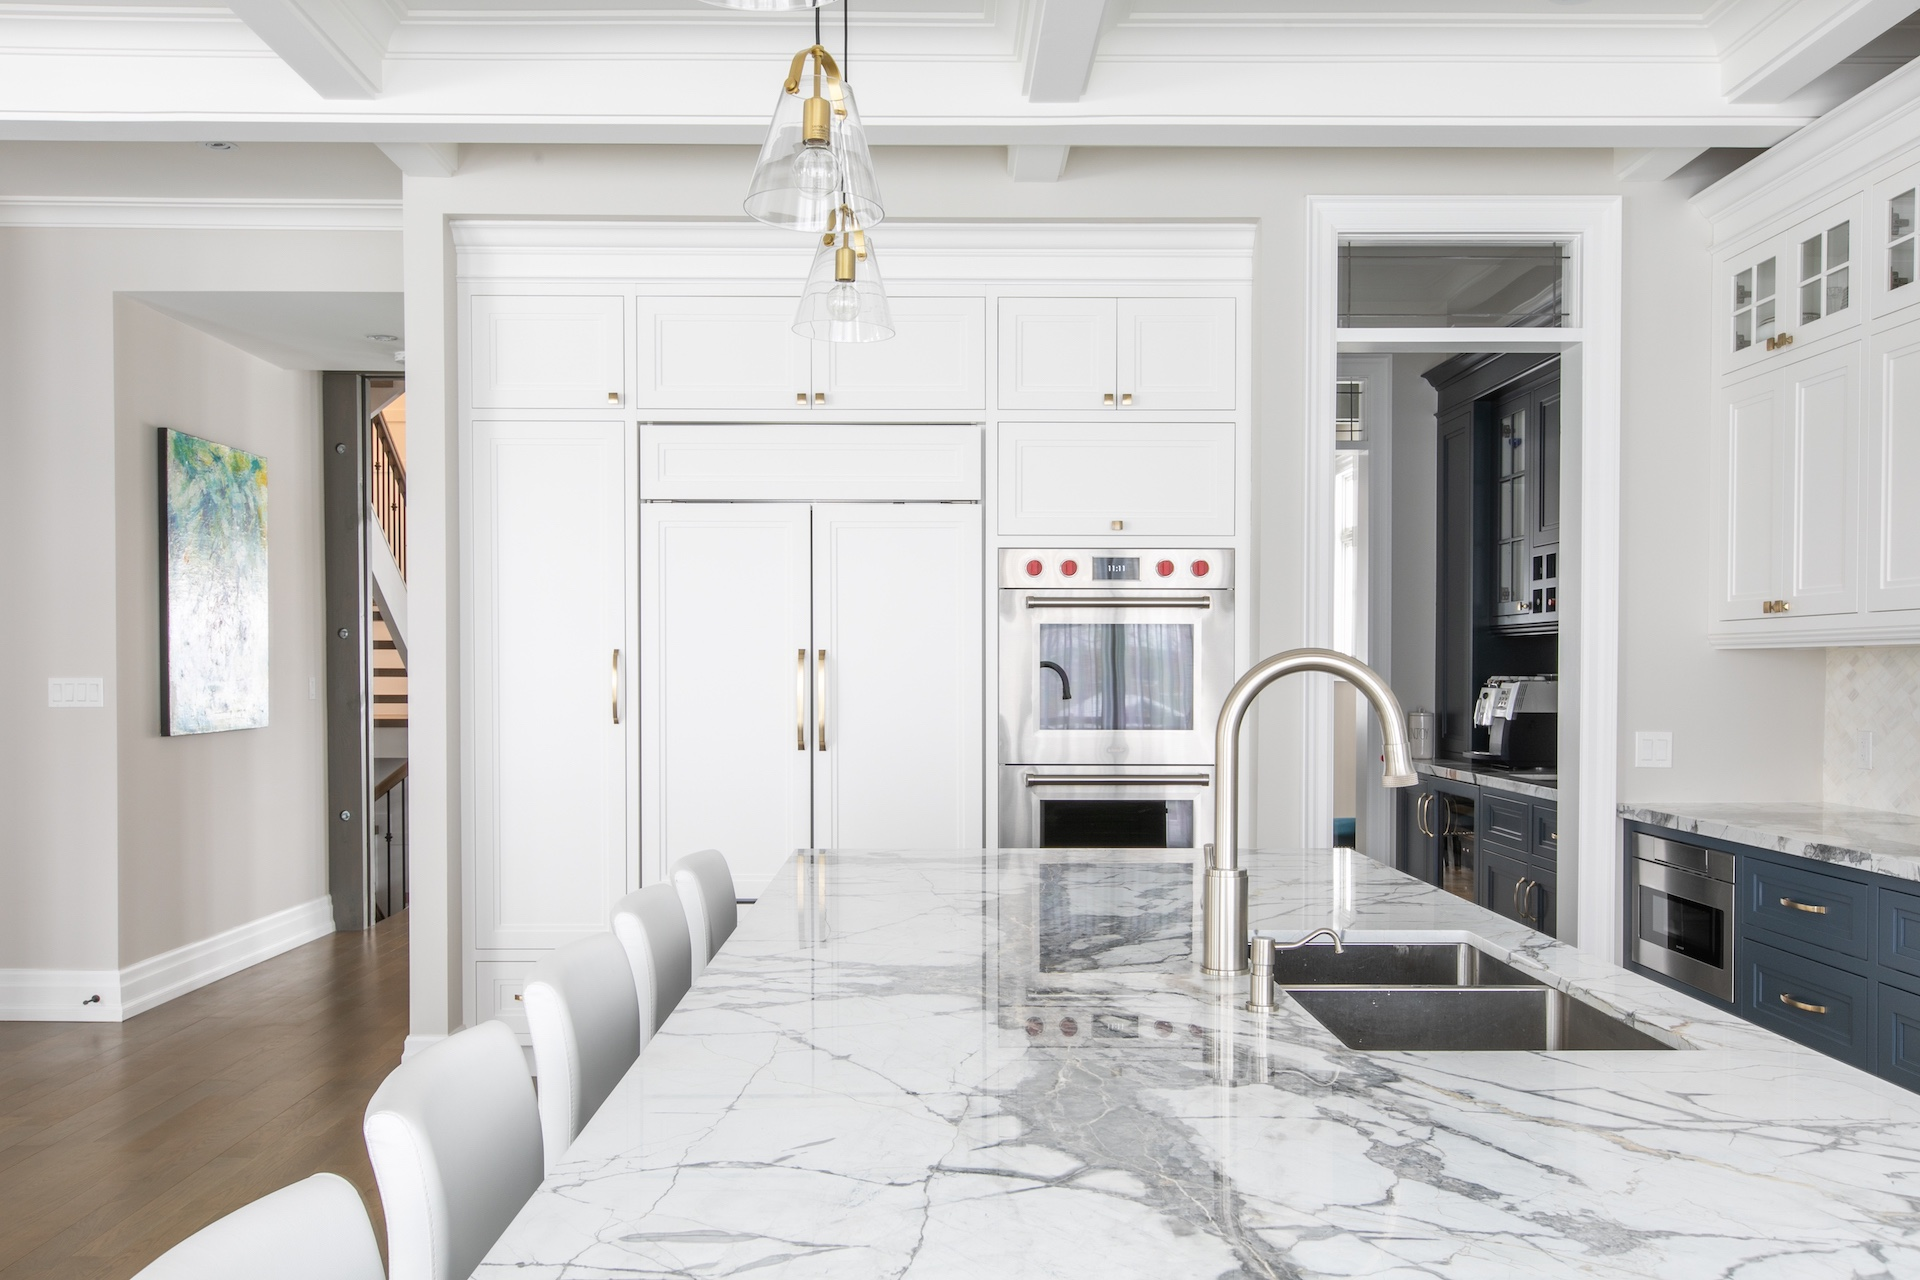 marble island counter with sink